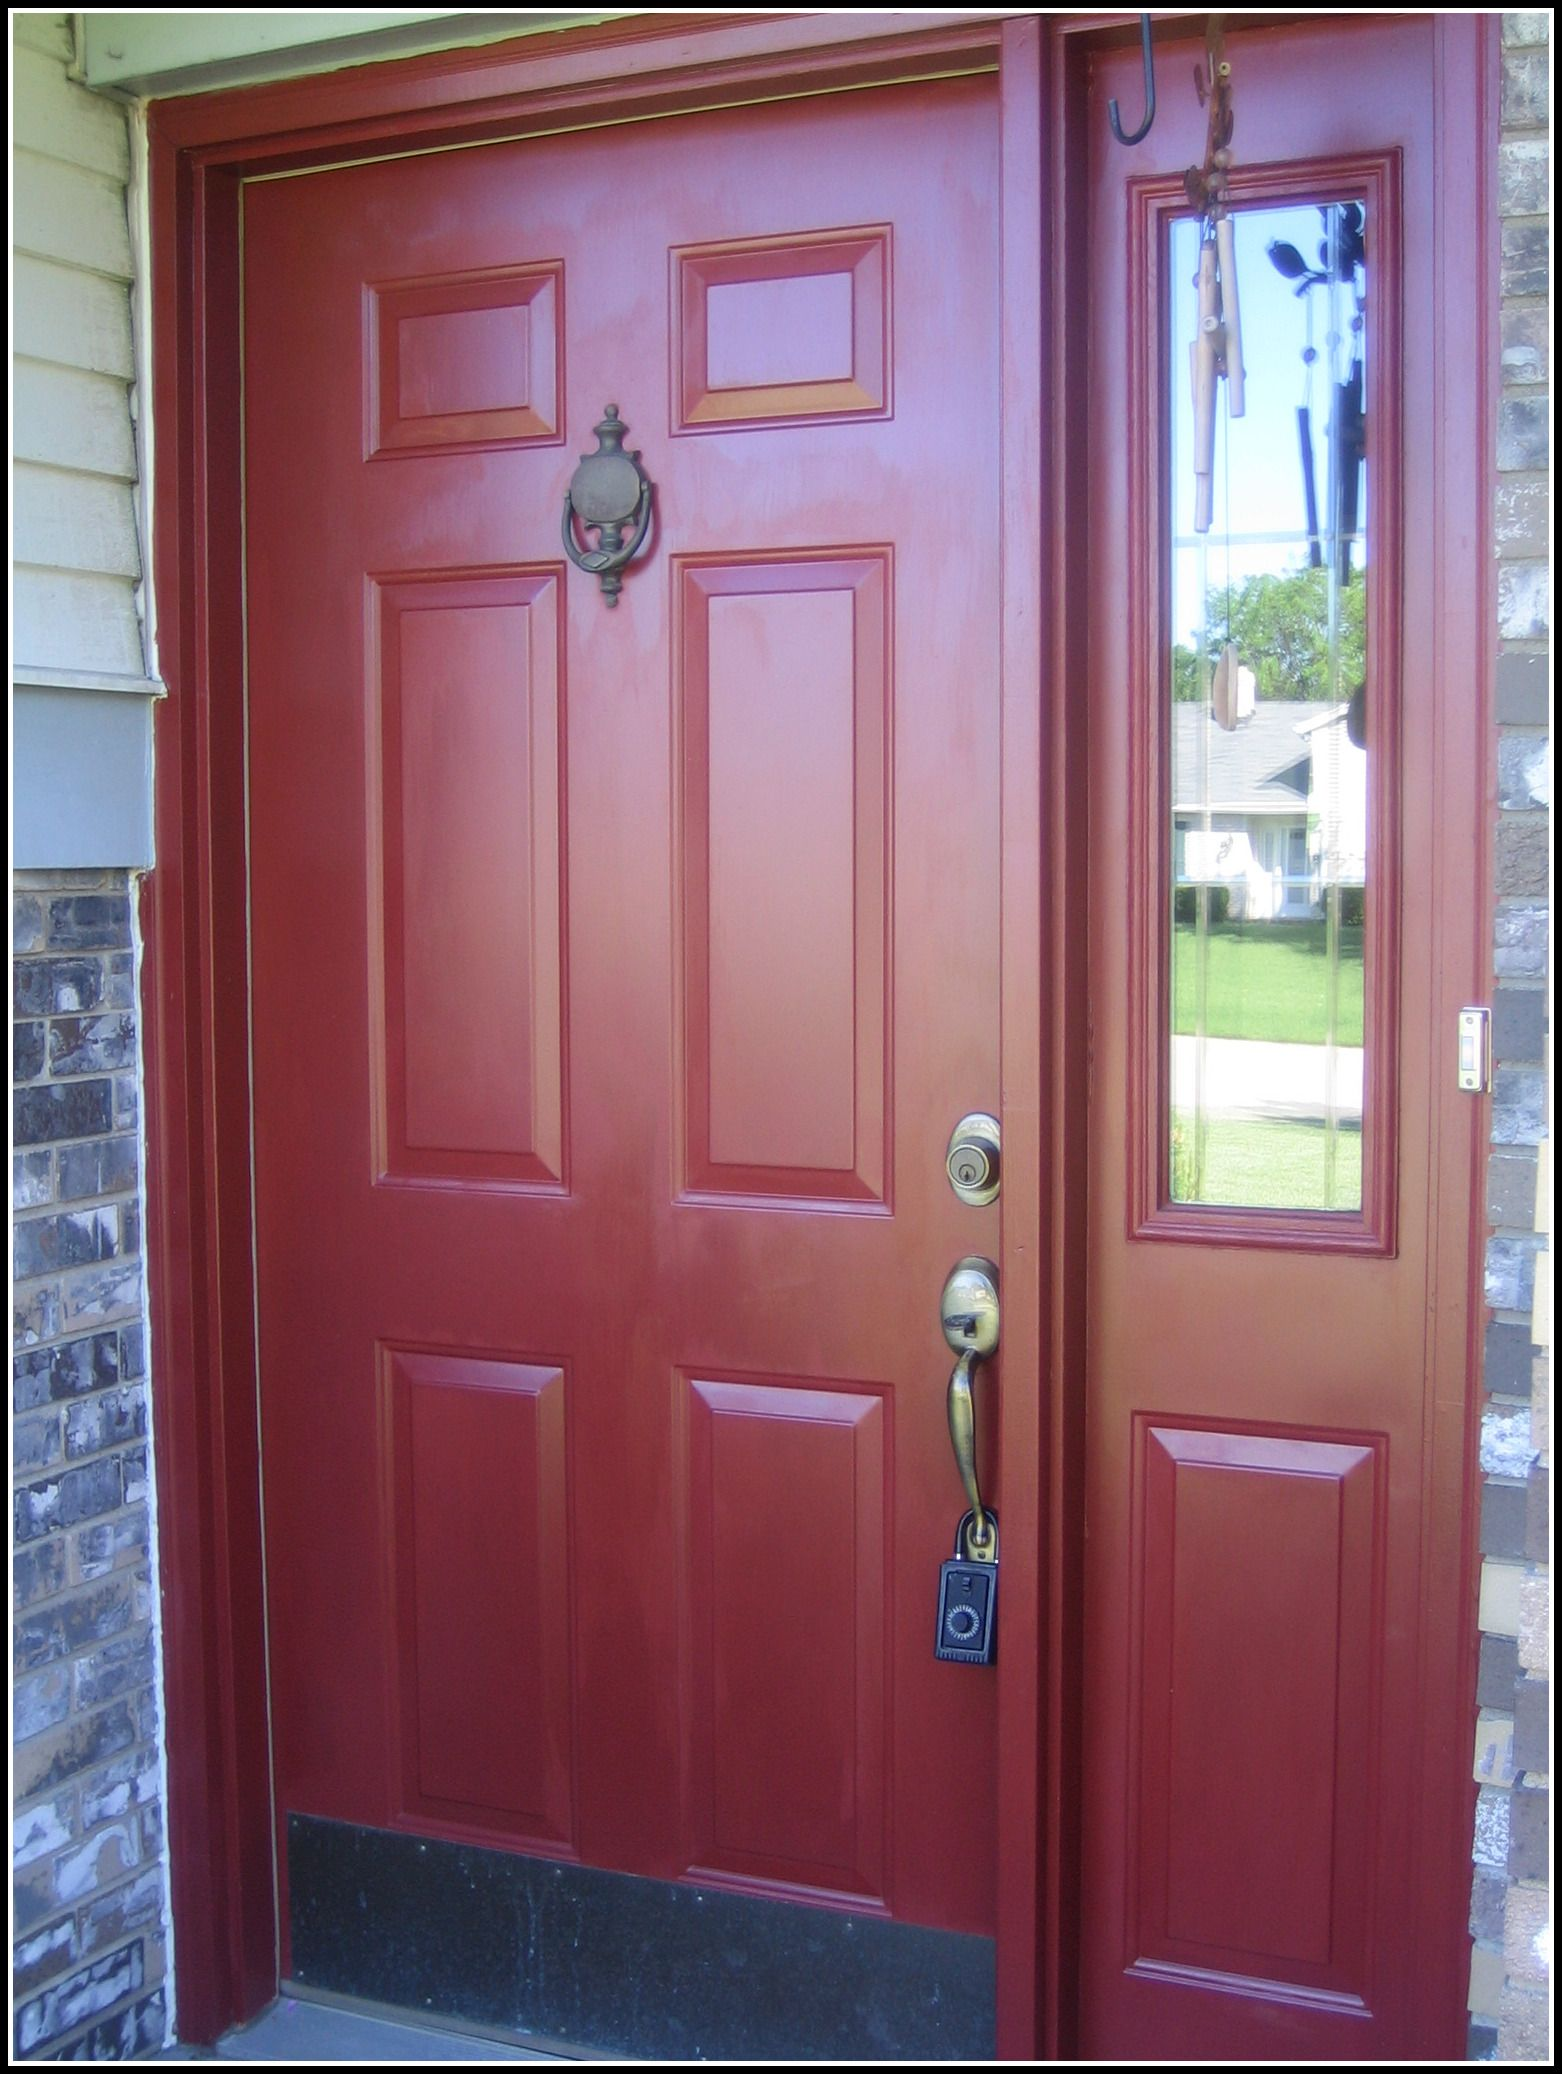 2074 #733039  Door Now? It's Not A For Sale For The Home Pinterest 39;t pic Paint Colors For Front Doors Pictures 48211562